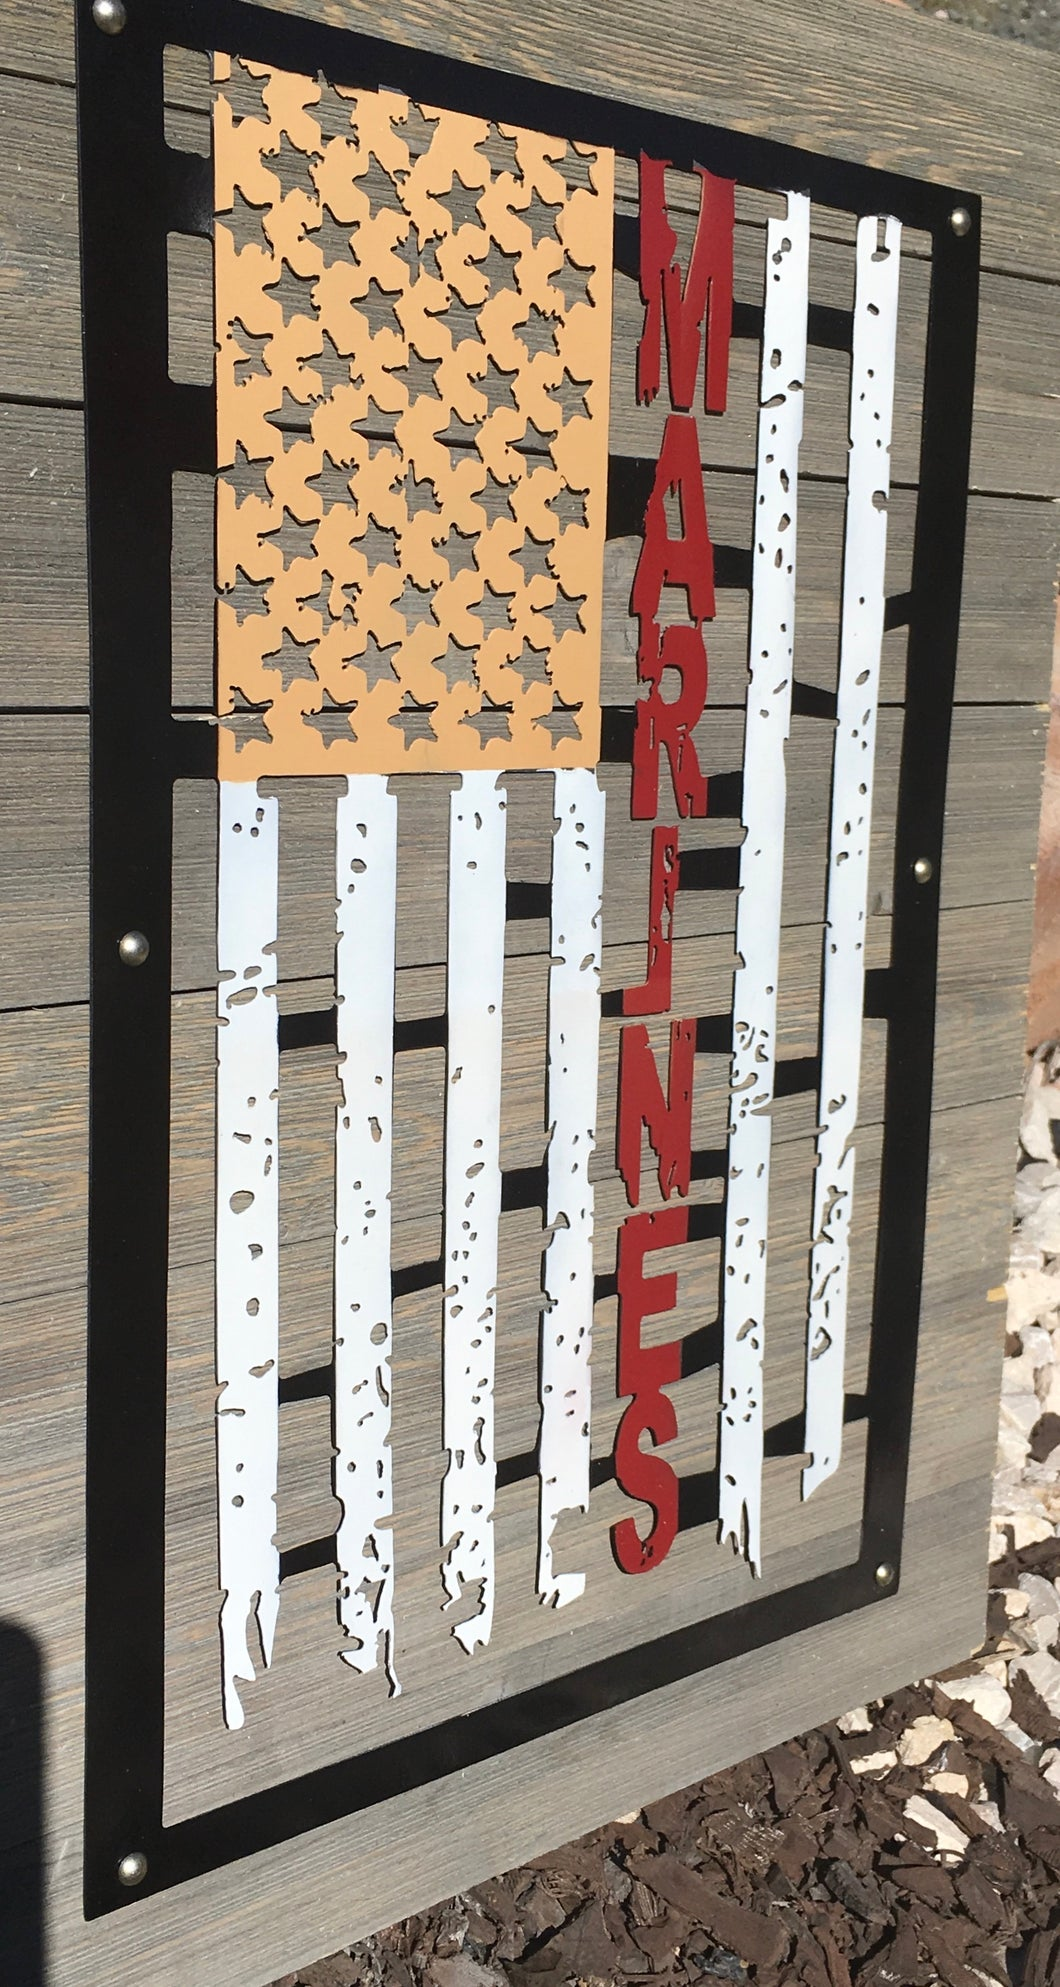 Metal Distressed Armed Forces Flag from Forged From The Ashes Inspirational Artwork for Military and Military Families